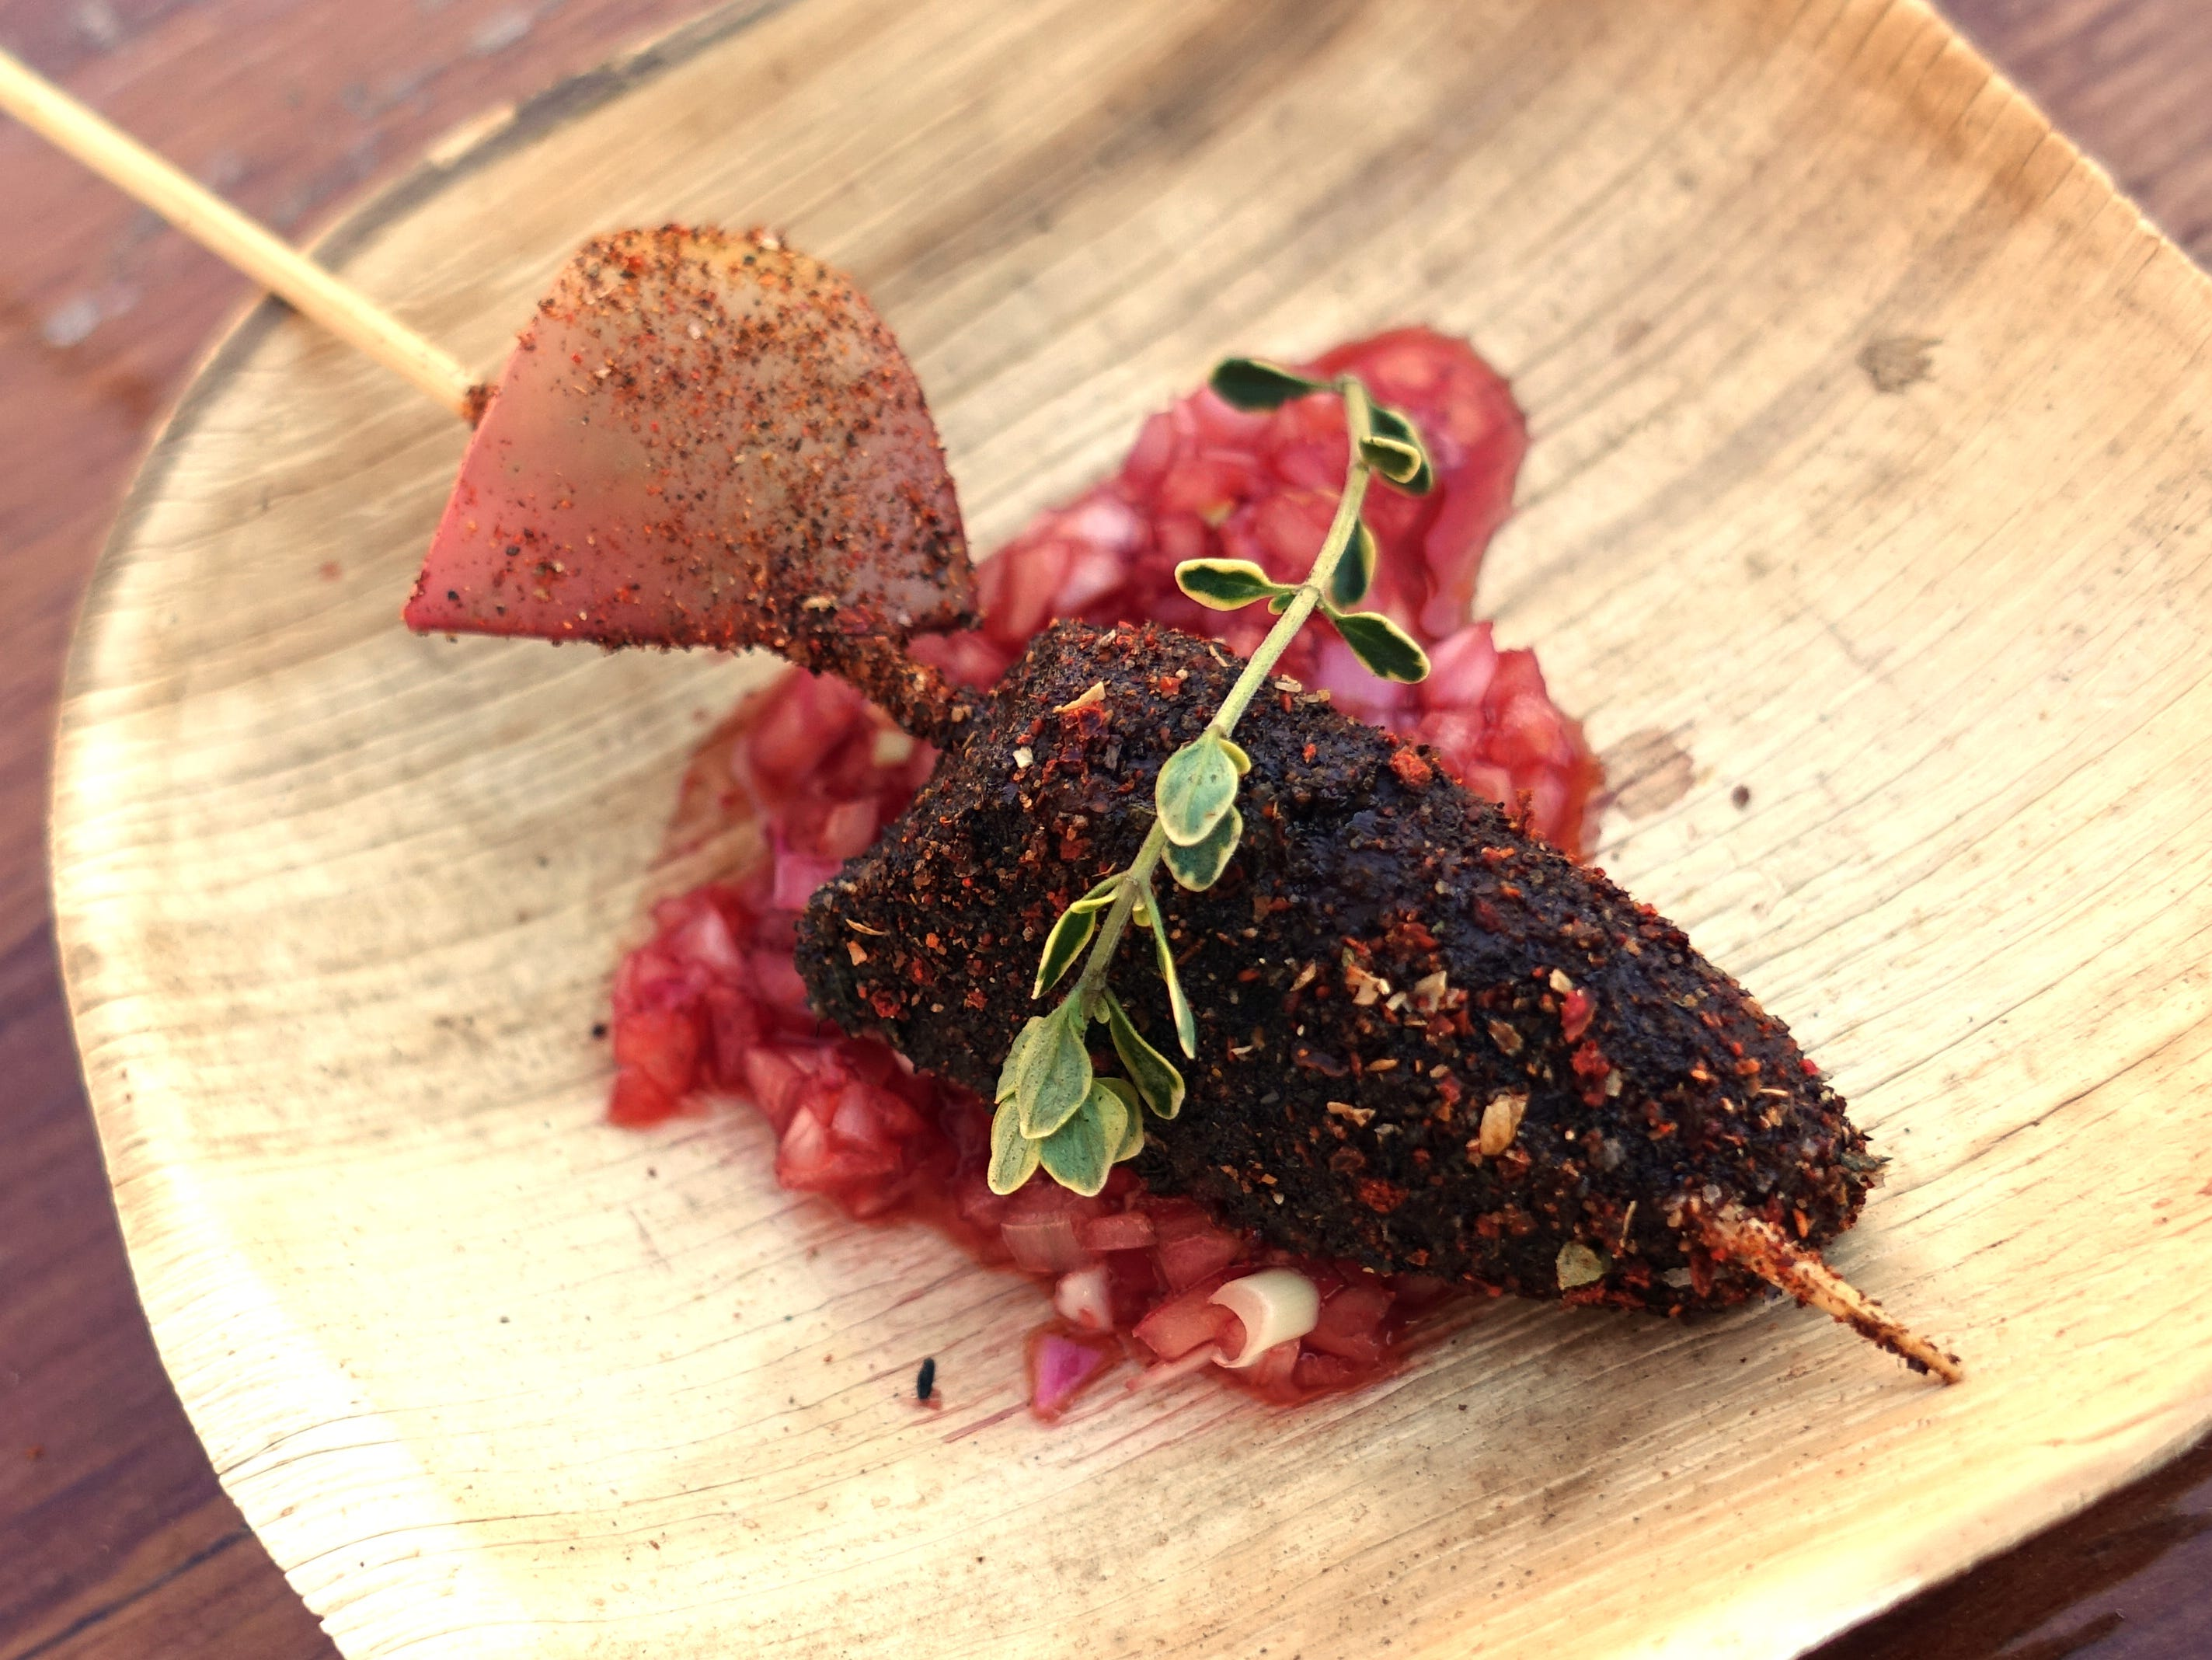 Grilled duck heart with apple, spiced coffee rub and saguaro mignonette from Cotton & Copper at the 2019 Devour Culinary Classic at the Desert Botanical Garden in Phoenix.